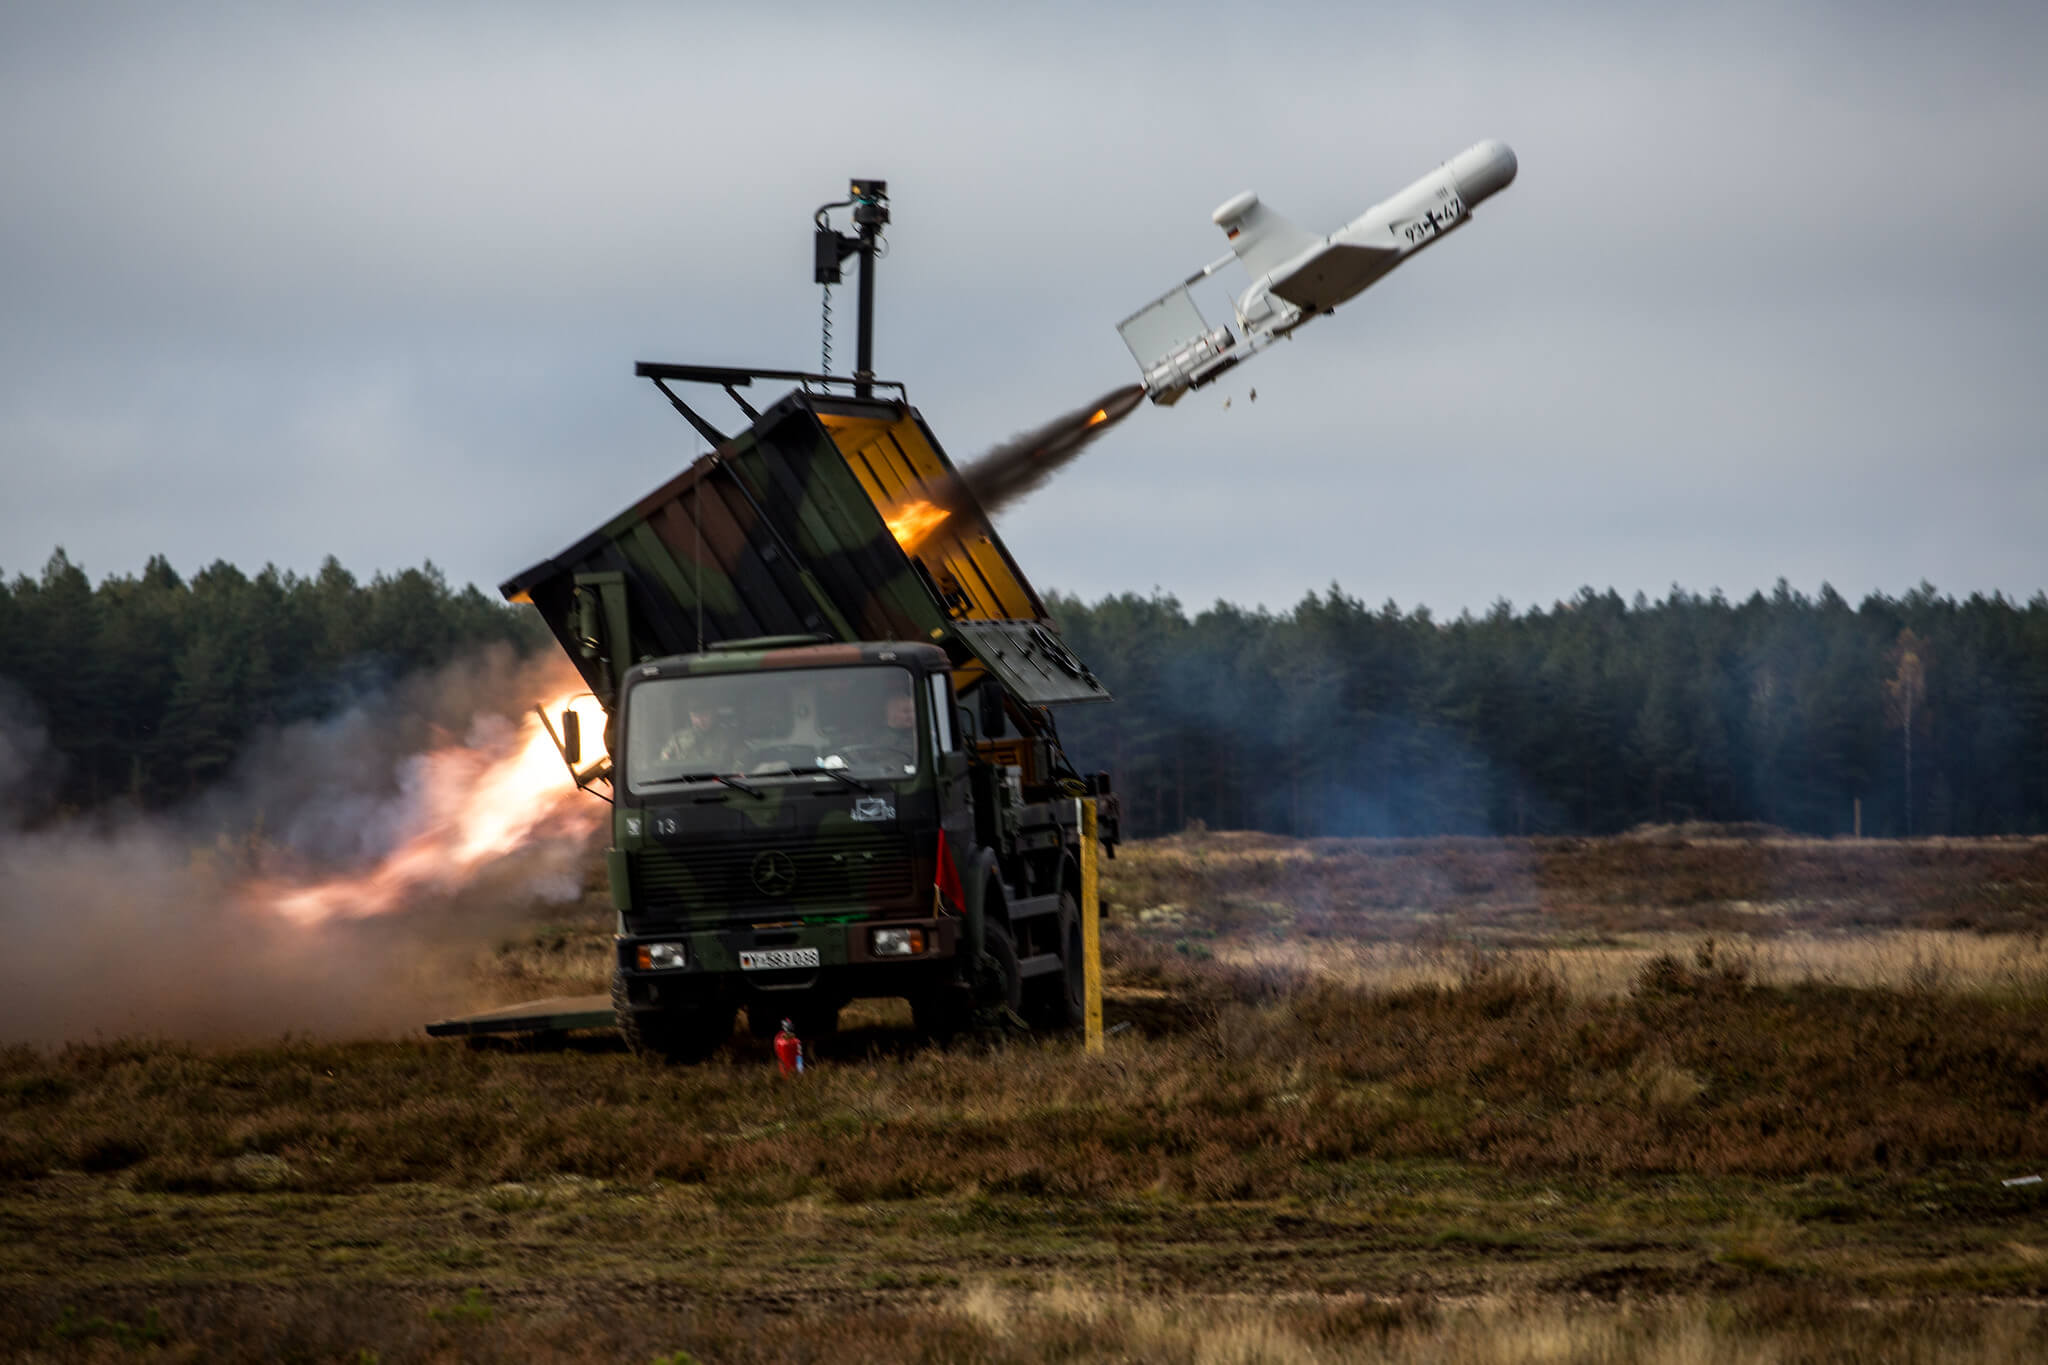 German Rheinmetall KZO drone being launched during NATO's Iron Wolf II exercise in 2017 in Lithuania. © NATO